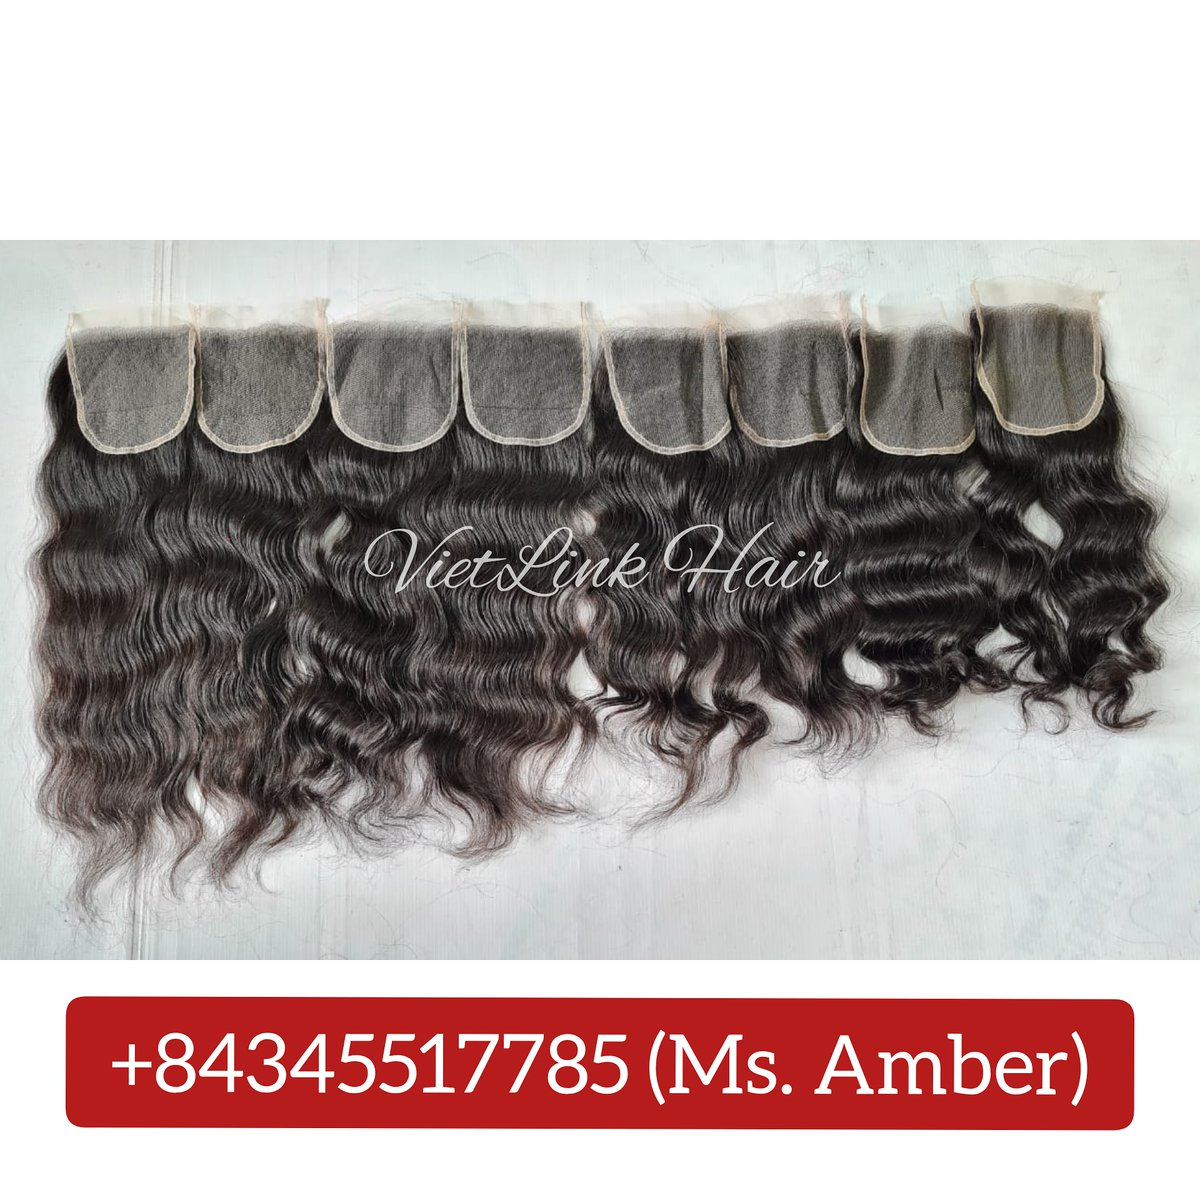 💕Contact Ms. Amber for the best deal: +84345517785 #hairfashion #rawhair #trendingnow #realhairlondon #hdlaceclosure #beautifulhair #lacefrontal #hairextensions #hairstyles #hdlacefrontals #humanhair #wavyhair #virginhair #hdlace #hdlacewig #hair #qualityhair #luxuryhair